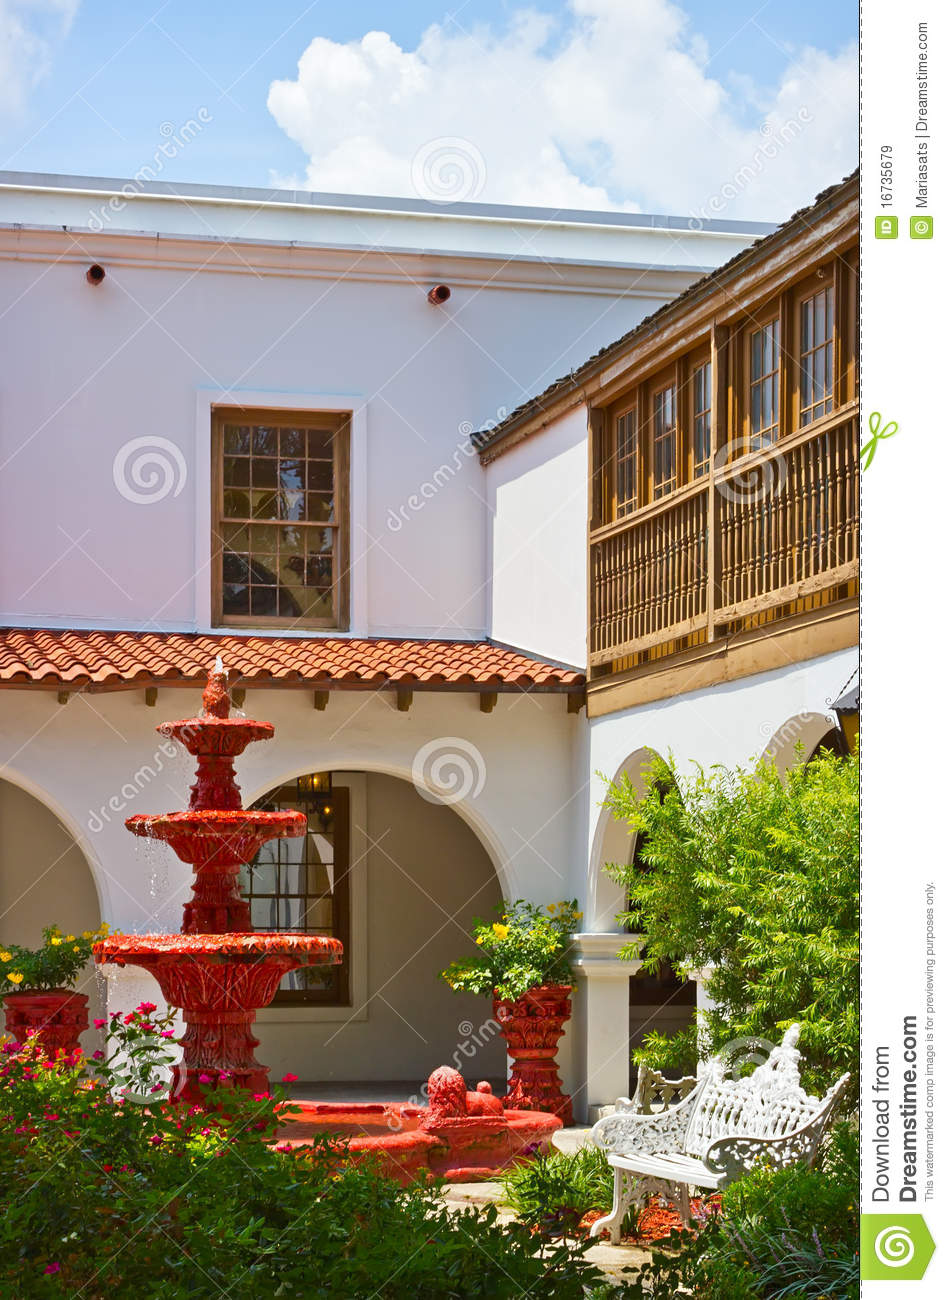 Spanish Style Patio With Red Fountain Stock Image Image